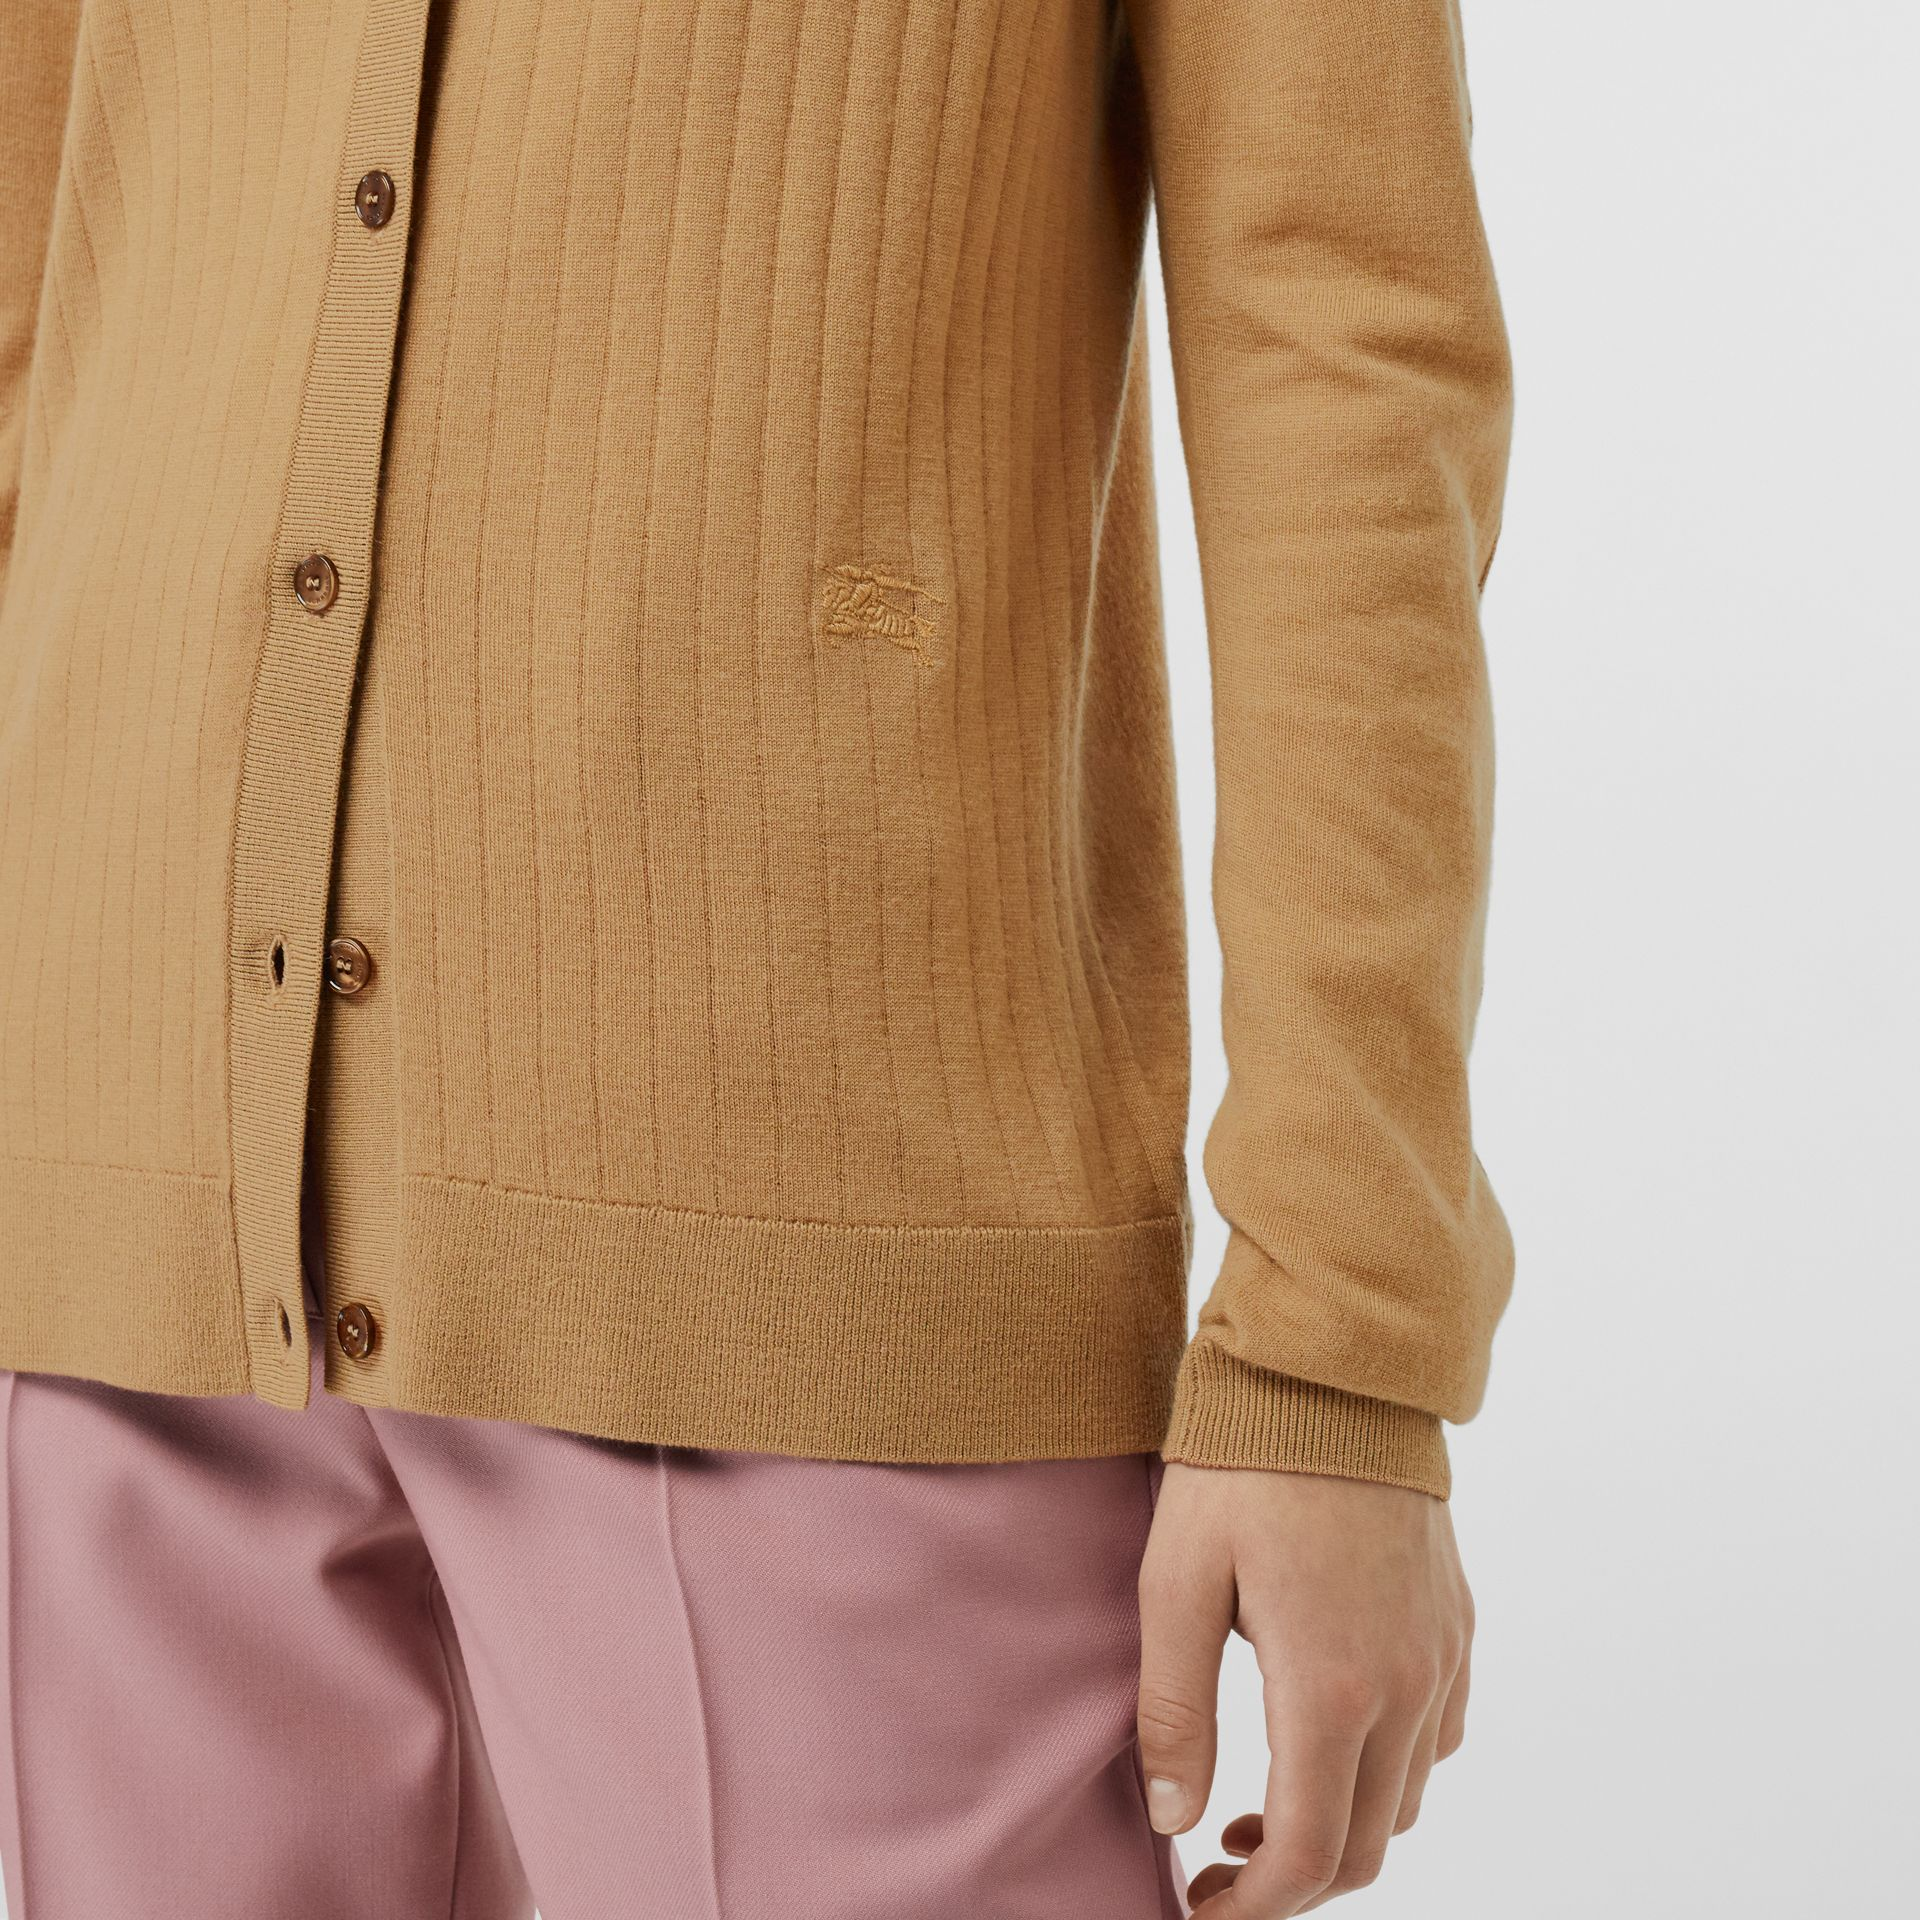 Rib Knit Cashmere Cardigan in Camel - Women | Burberry Hong Kong - gallery image 1